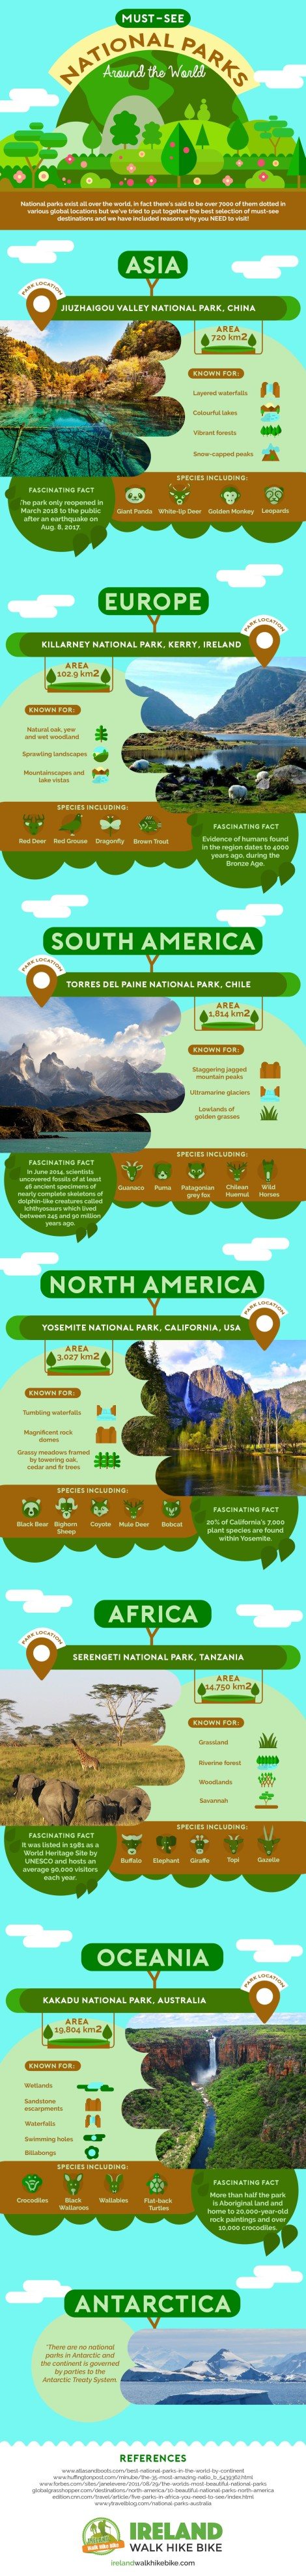 ireland walk hike bike national parks infographic at Base Camp Magazine